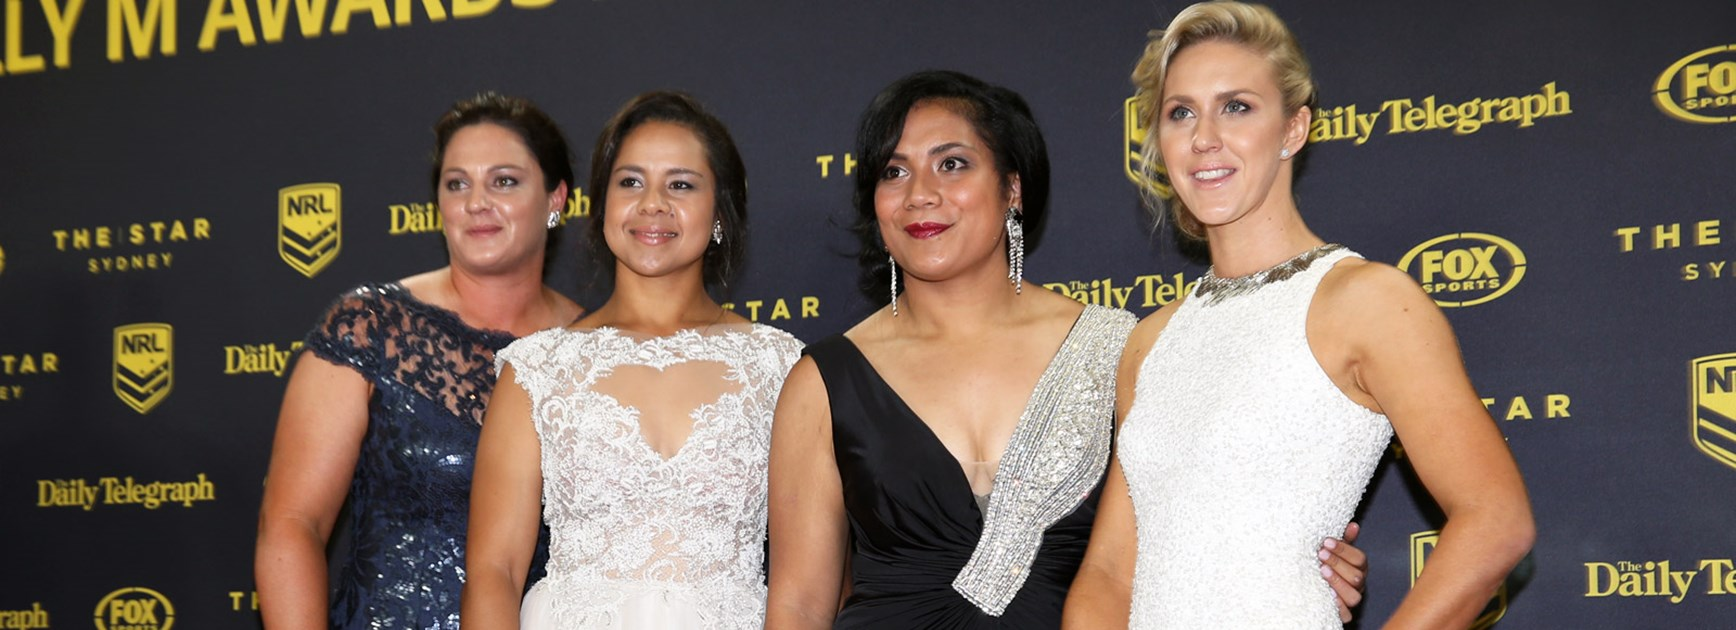 Jillaroos Steph Hancock, Jenni-Sue Hoepper, Simaima Taufa and Karina Brown were the nominees for the inaugural Dally M Female Player of the Year last year.